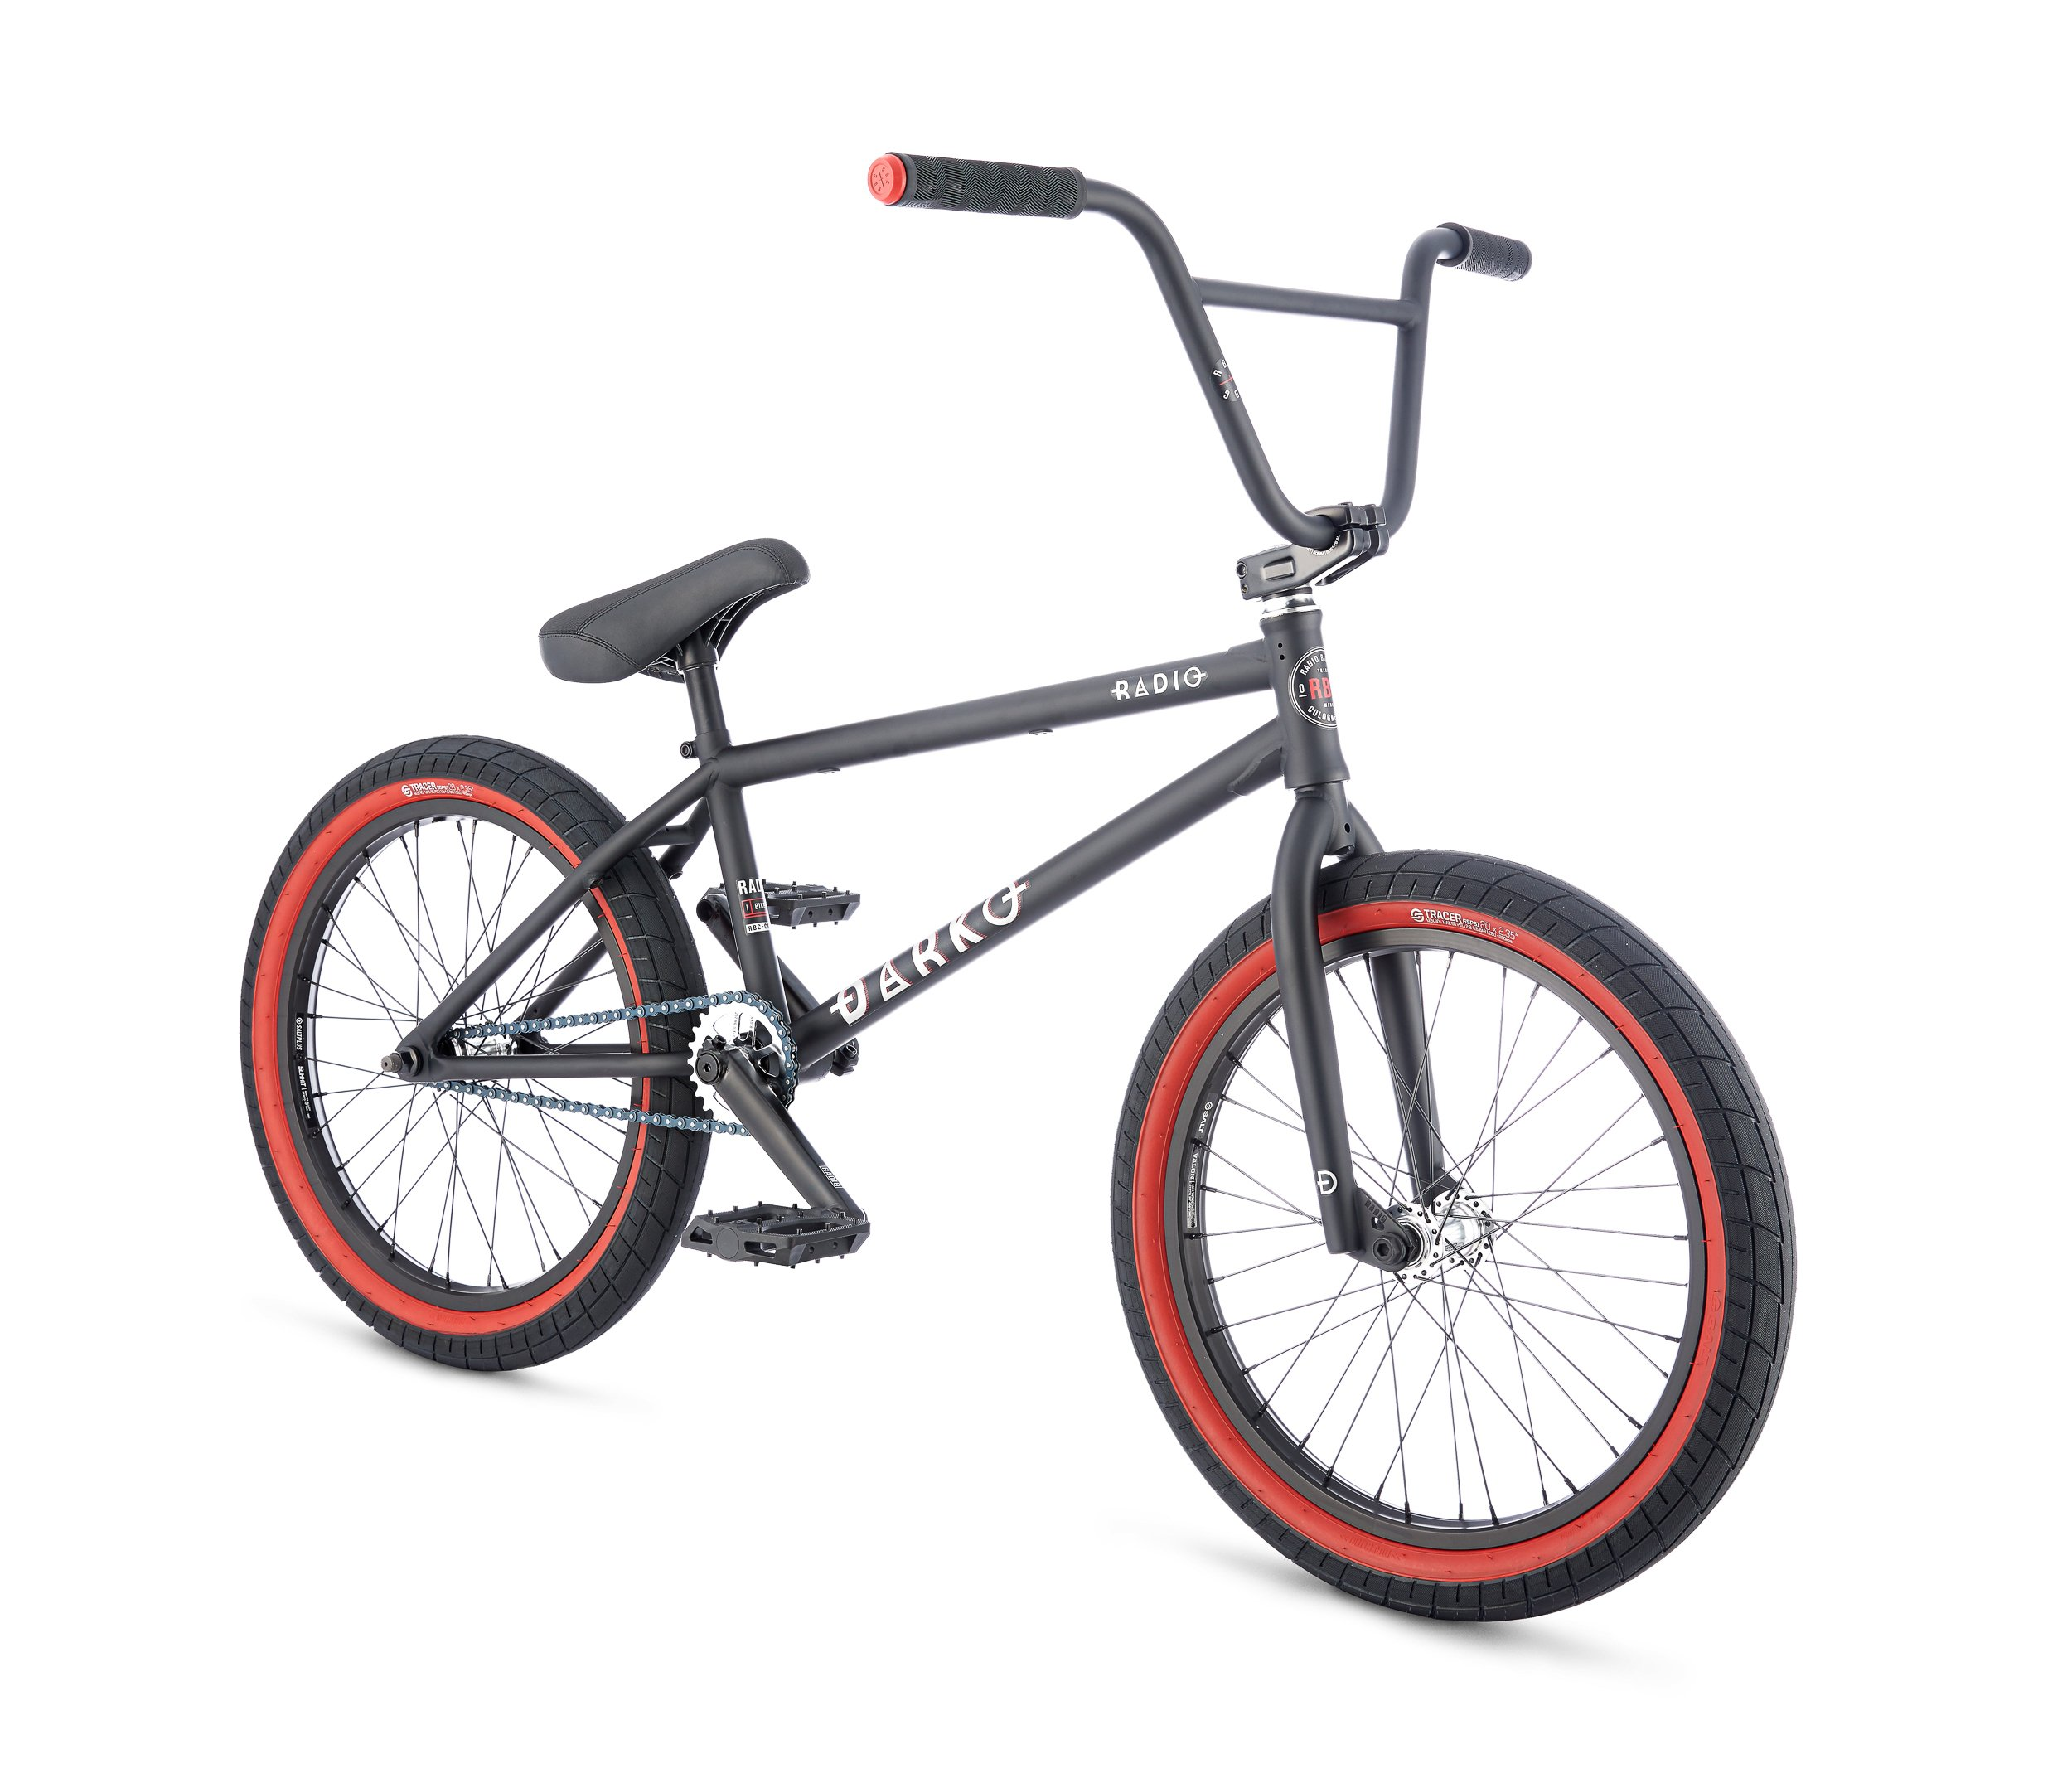 Radio Bikes Darko Bicicleta BMX, Unisex Adulto, Negro, 21: Amazon ...